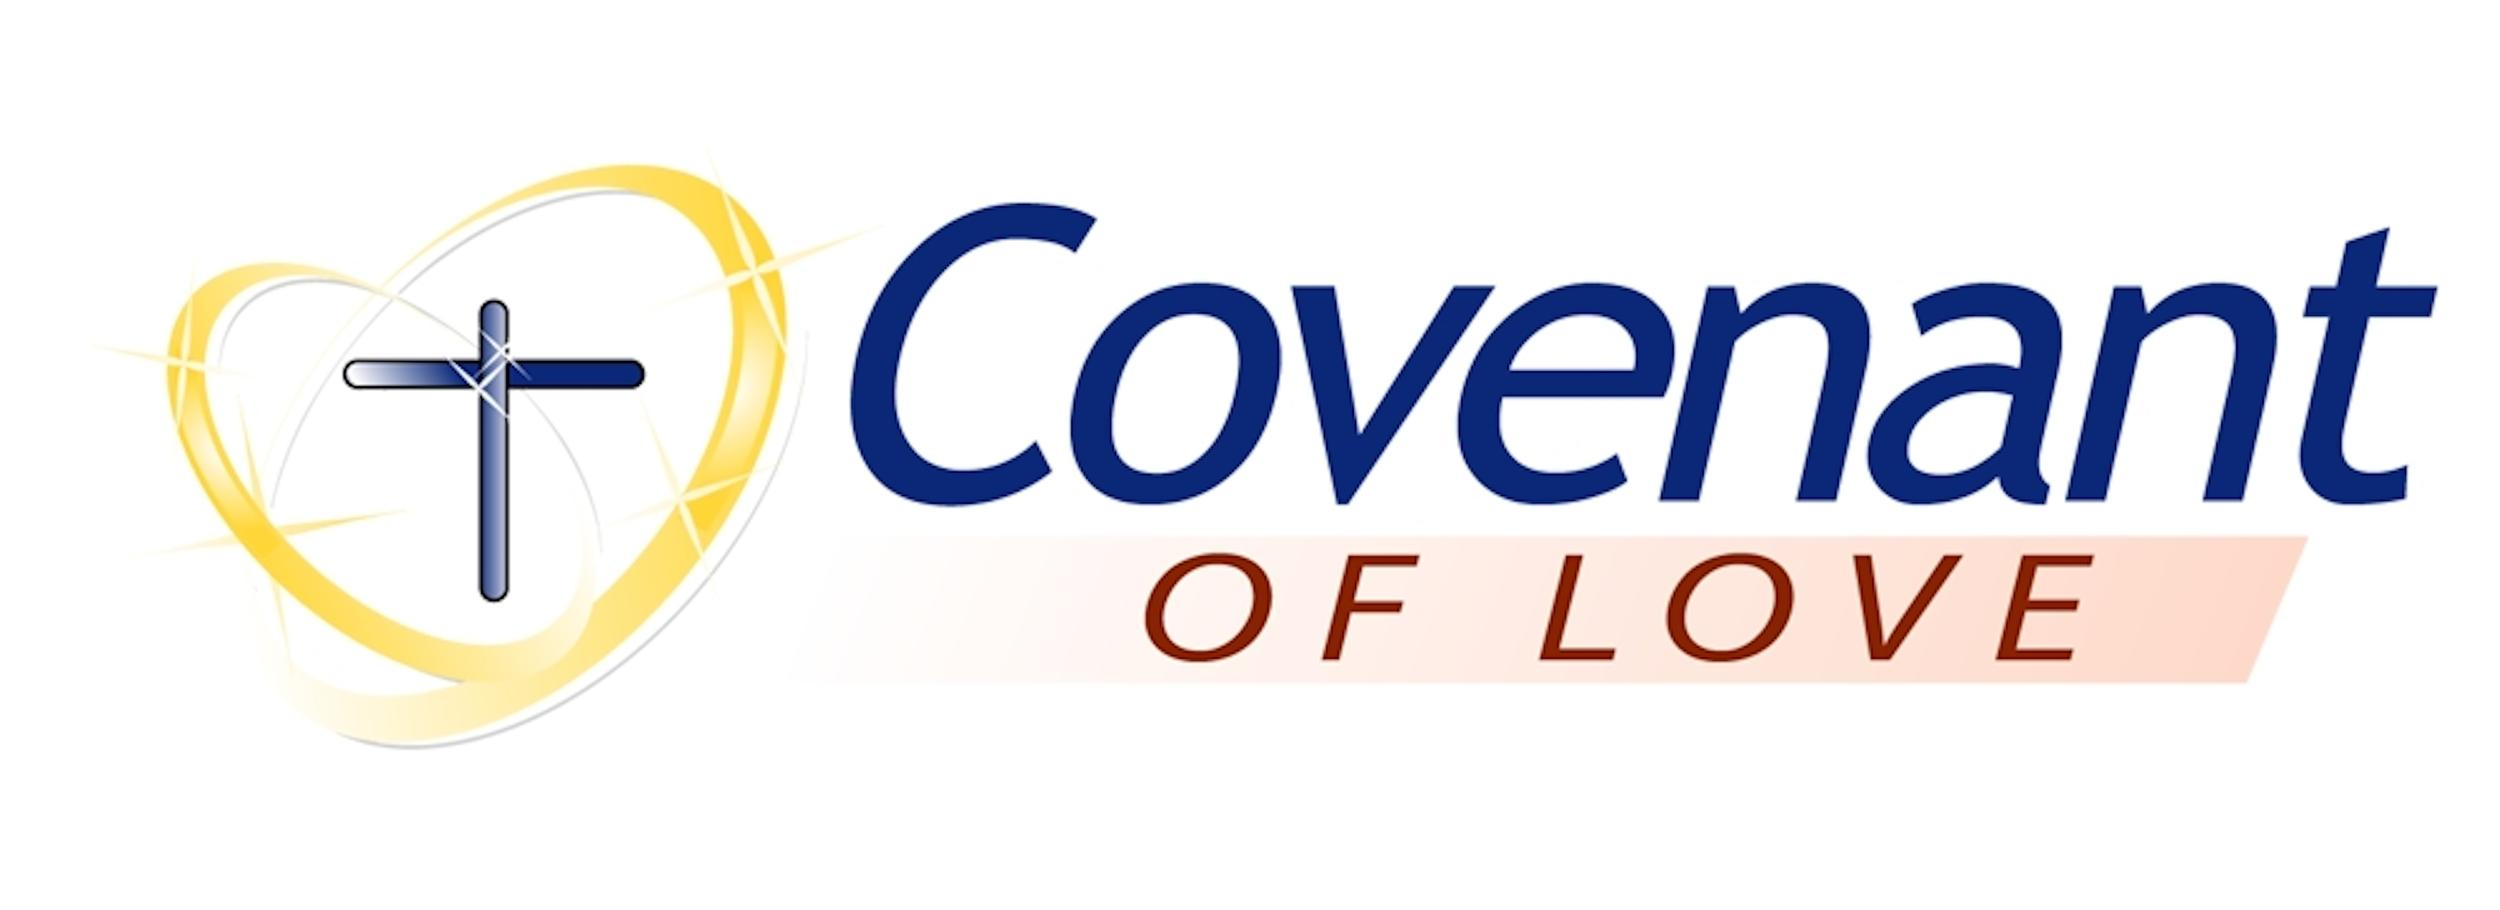 covenant marriage would decrease rate of In louisiana, between 2000 and 2010, only about 1 percent of marrying couples chose a covenant marriage, with the other 99 percent choosing to marry under standard marriage laws permitting no-fault divorce in arizona, estimates of the rate of covenant marriage among new couples range from 025 percent to 1 percent.